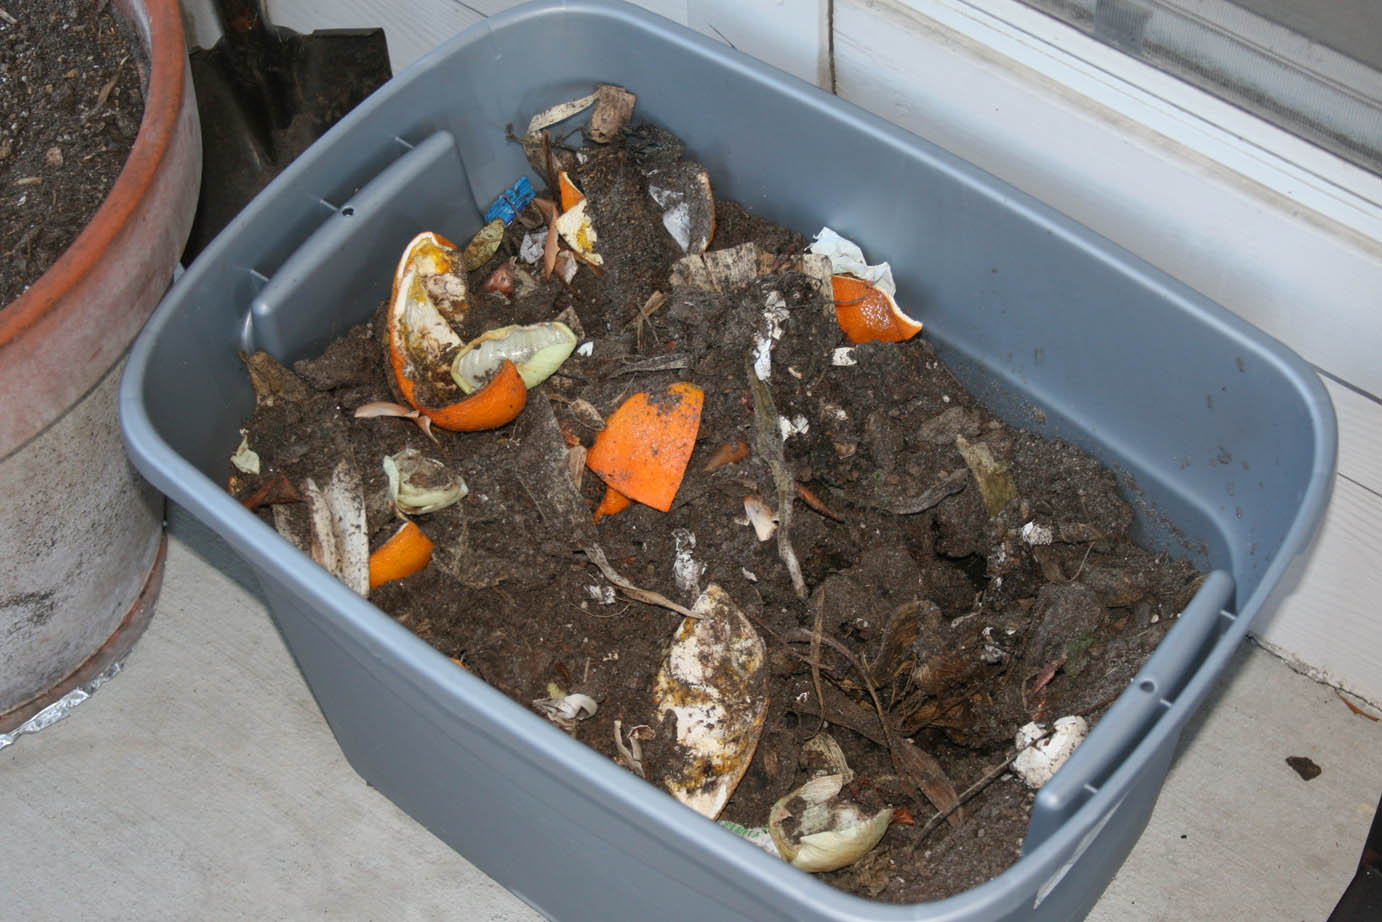 how to get rid of maggots in the compost bin